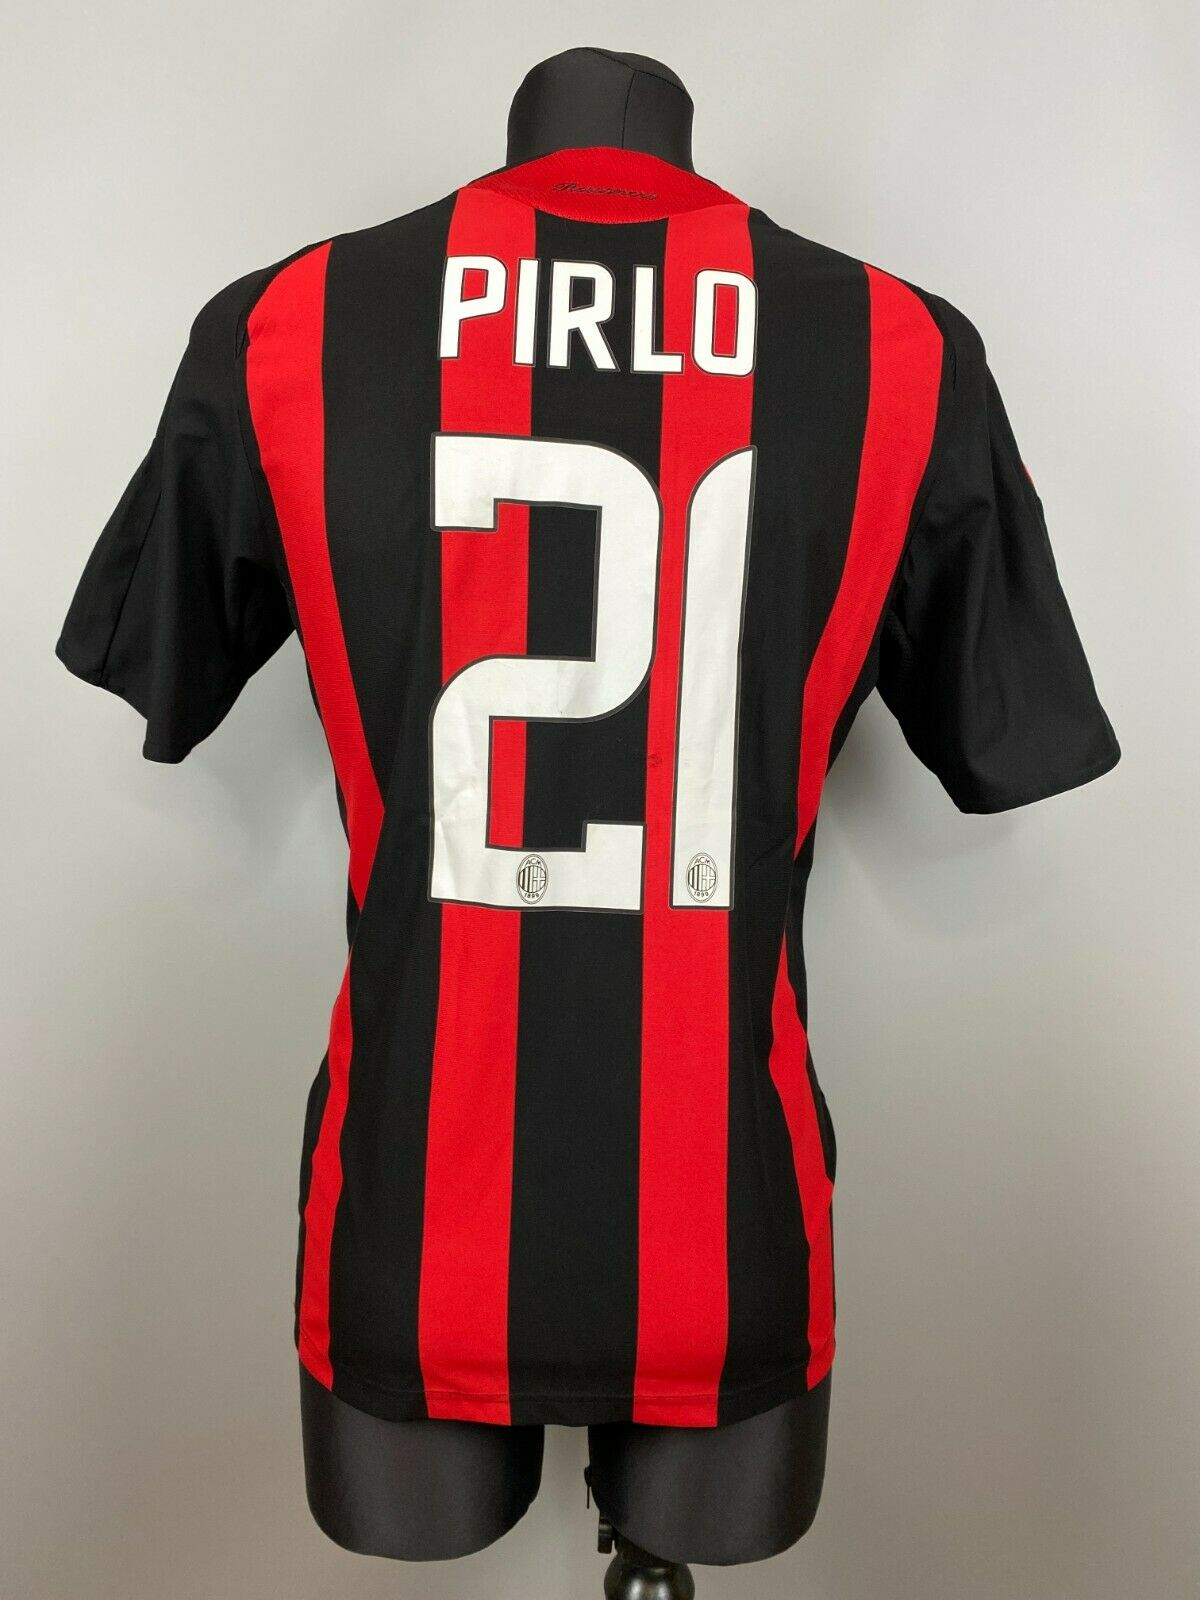 cheque Aprendizaje Botánica  AC MILAN 2008 2009 PIRLO HOME SHIRT ACM FOOTBALL SOCCER JERSEY ADIDAS SIZE  M for sale online